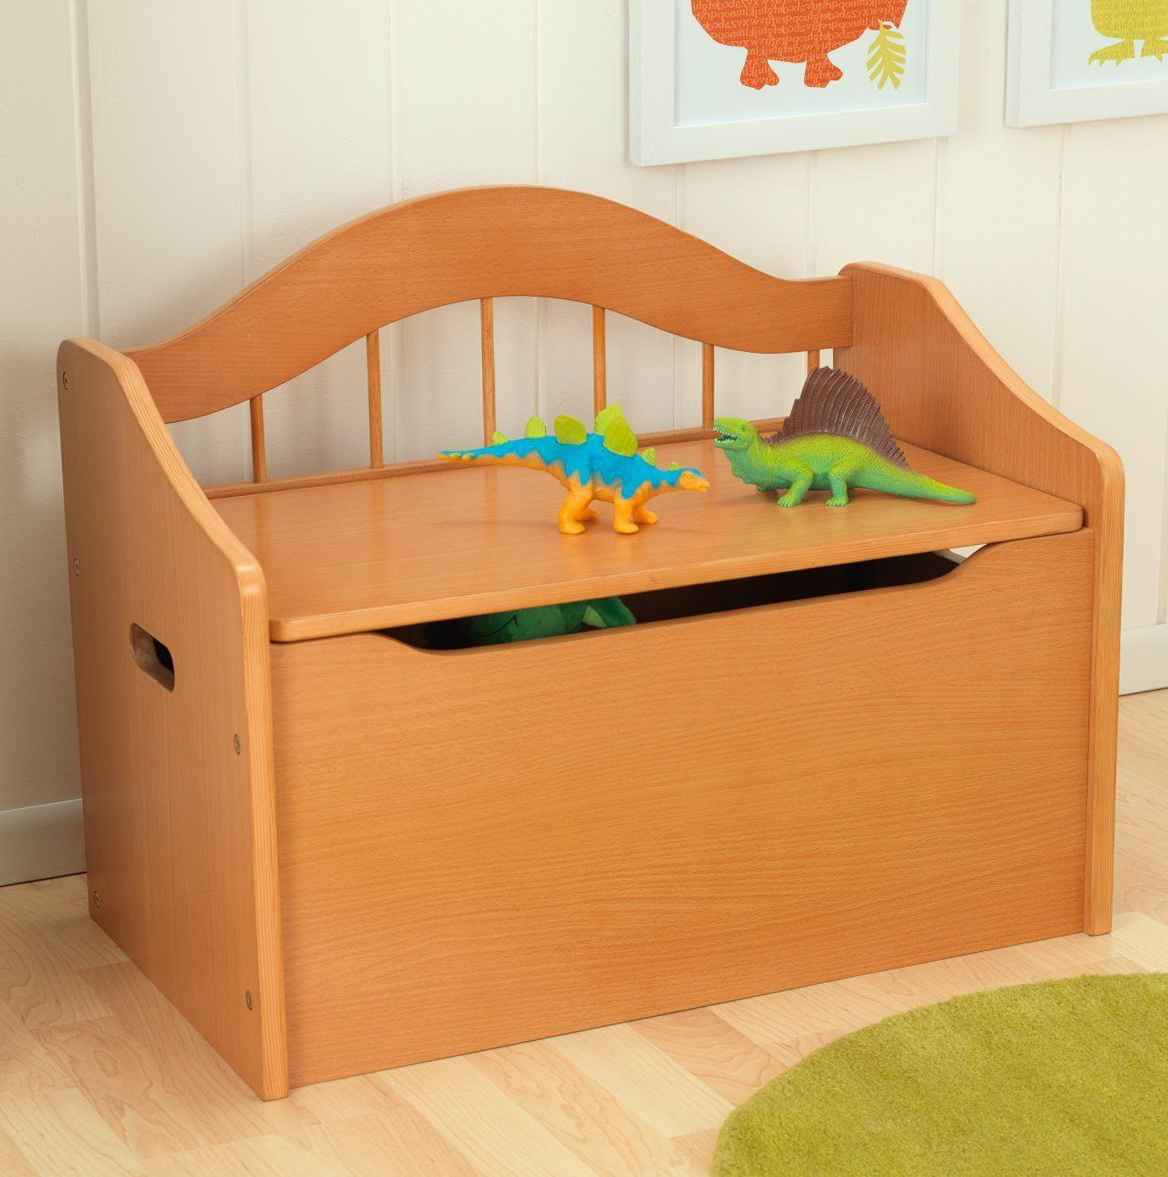 Wooden Toy Box Bench Home Design Ideas